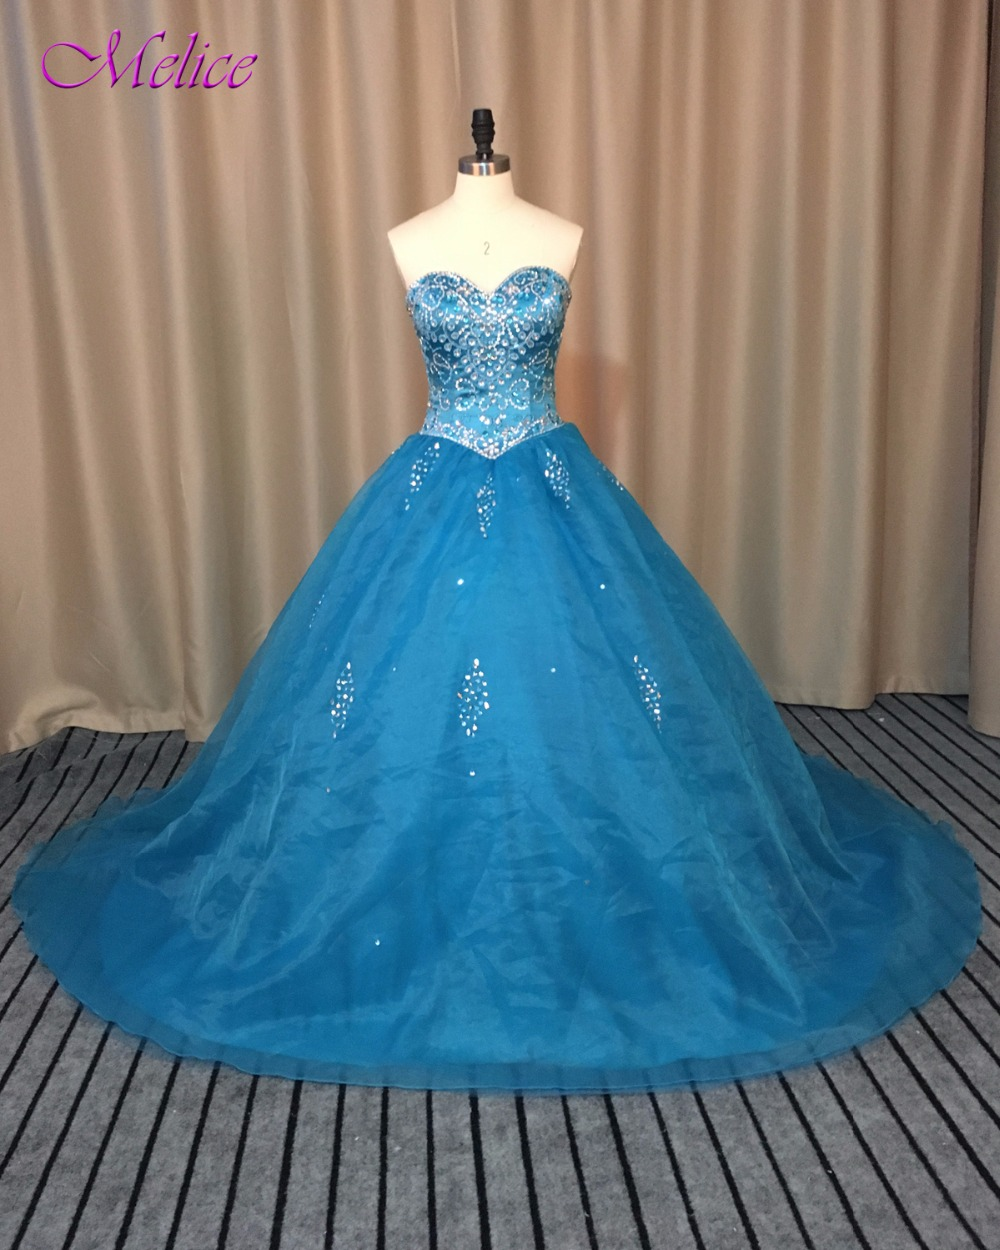 Melice Luxury Beaded Crystal Princess Quinceanera Dresses 2017 Graceful Organza Royal Blue Ball Gown Debutante Dress For 15 anos